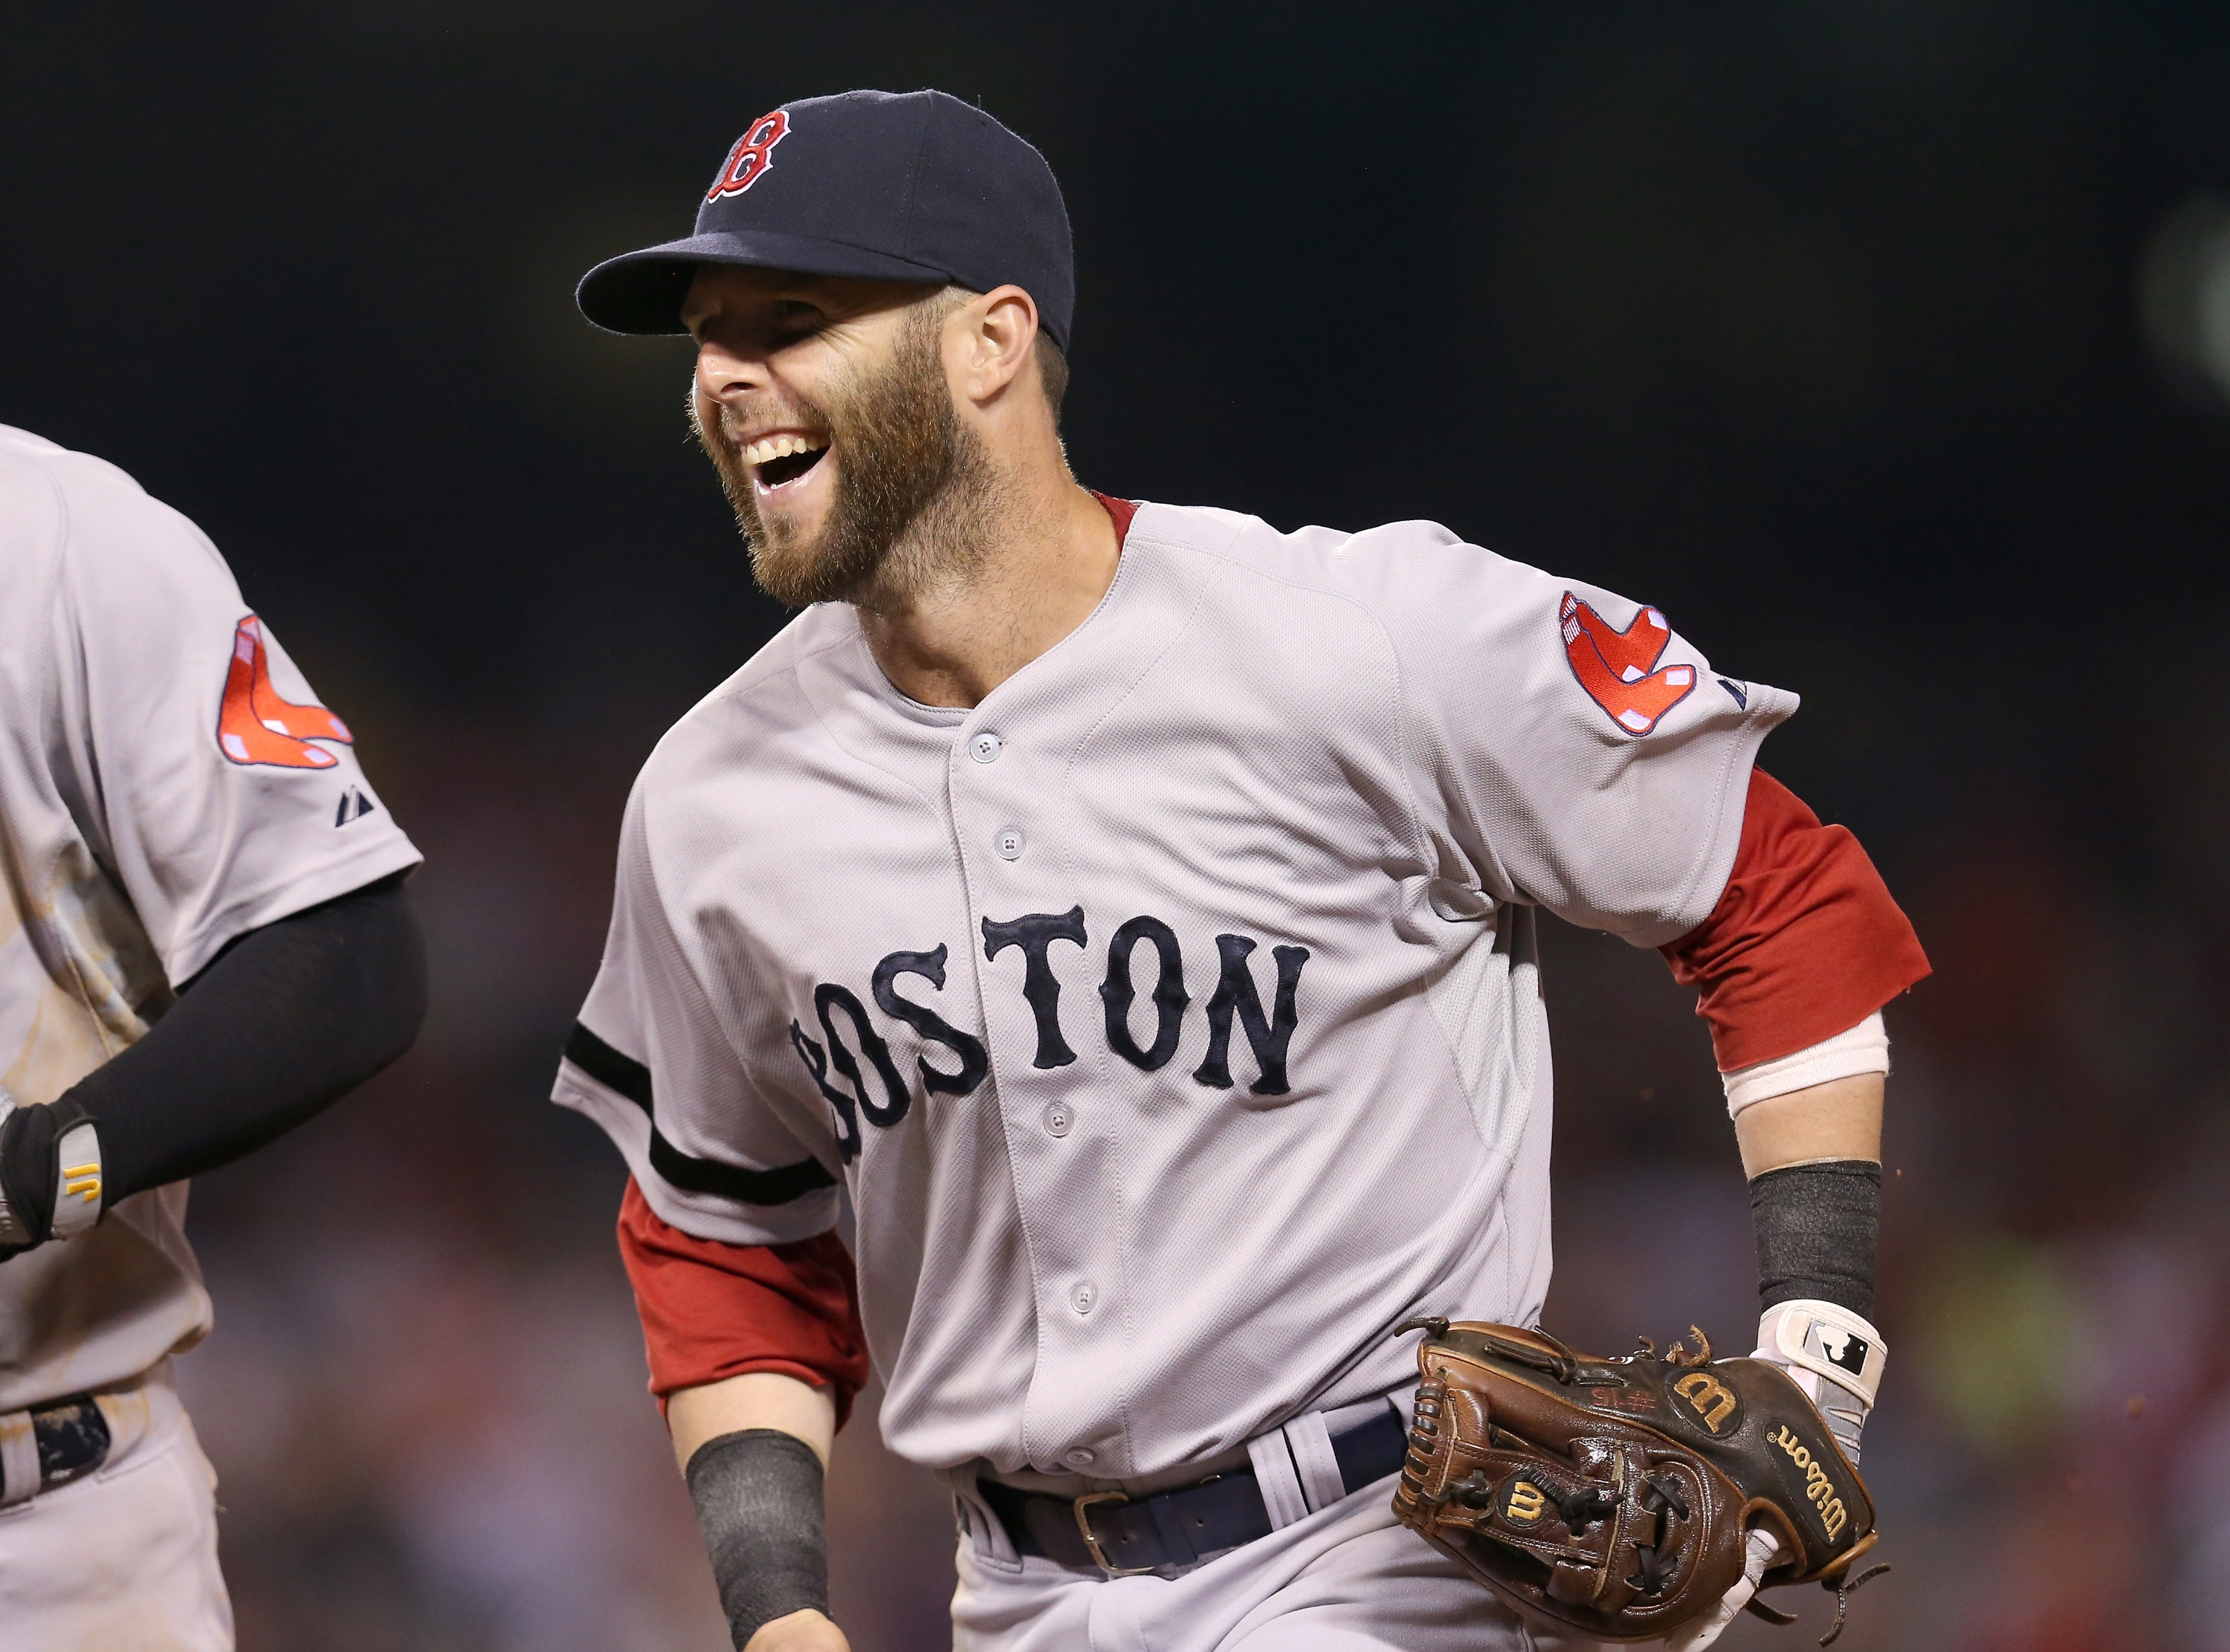 Dustin Pedroia could be getting a hefty raise from the Red Sox. (Getty Images)